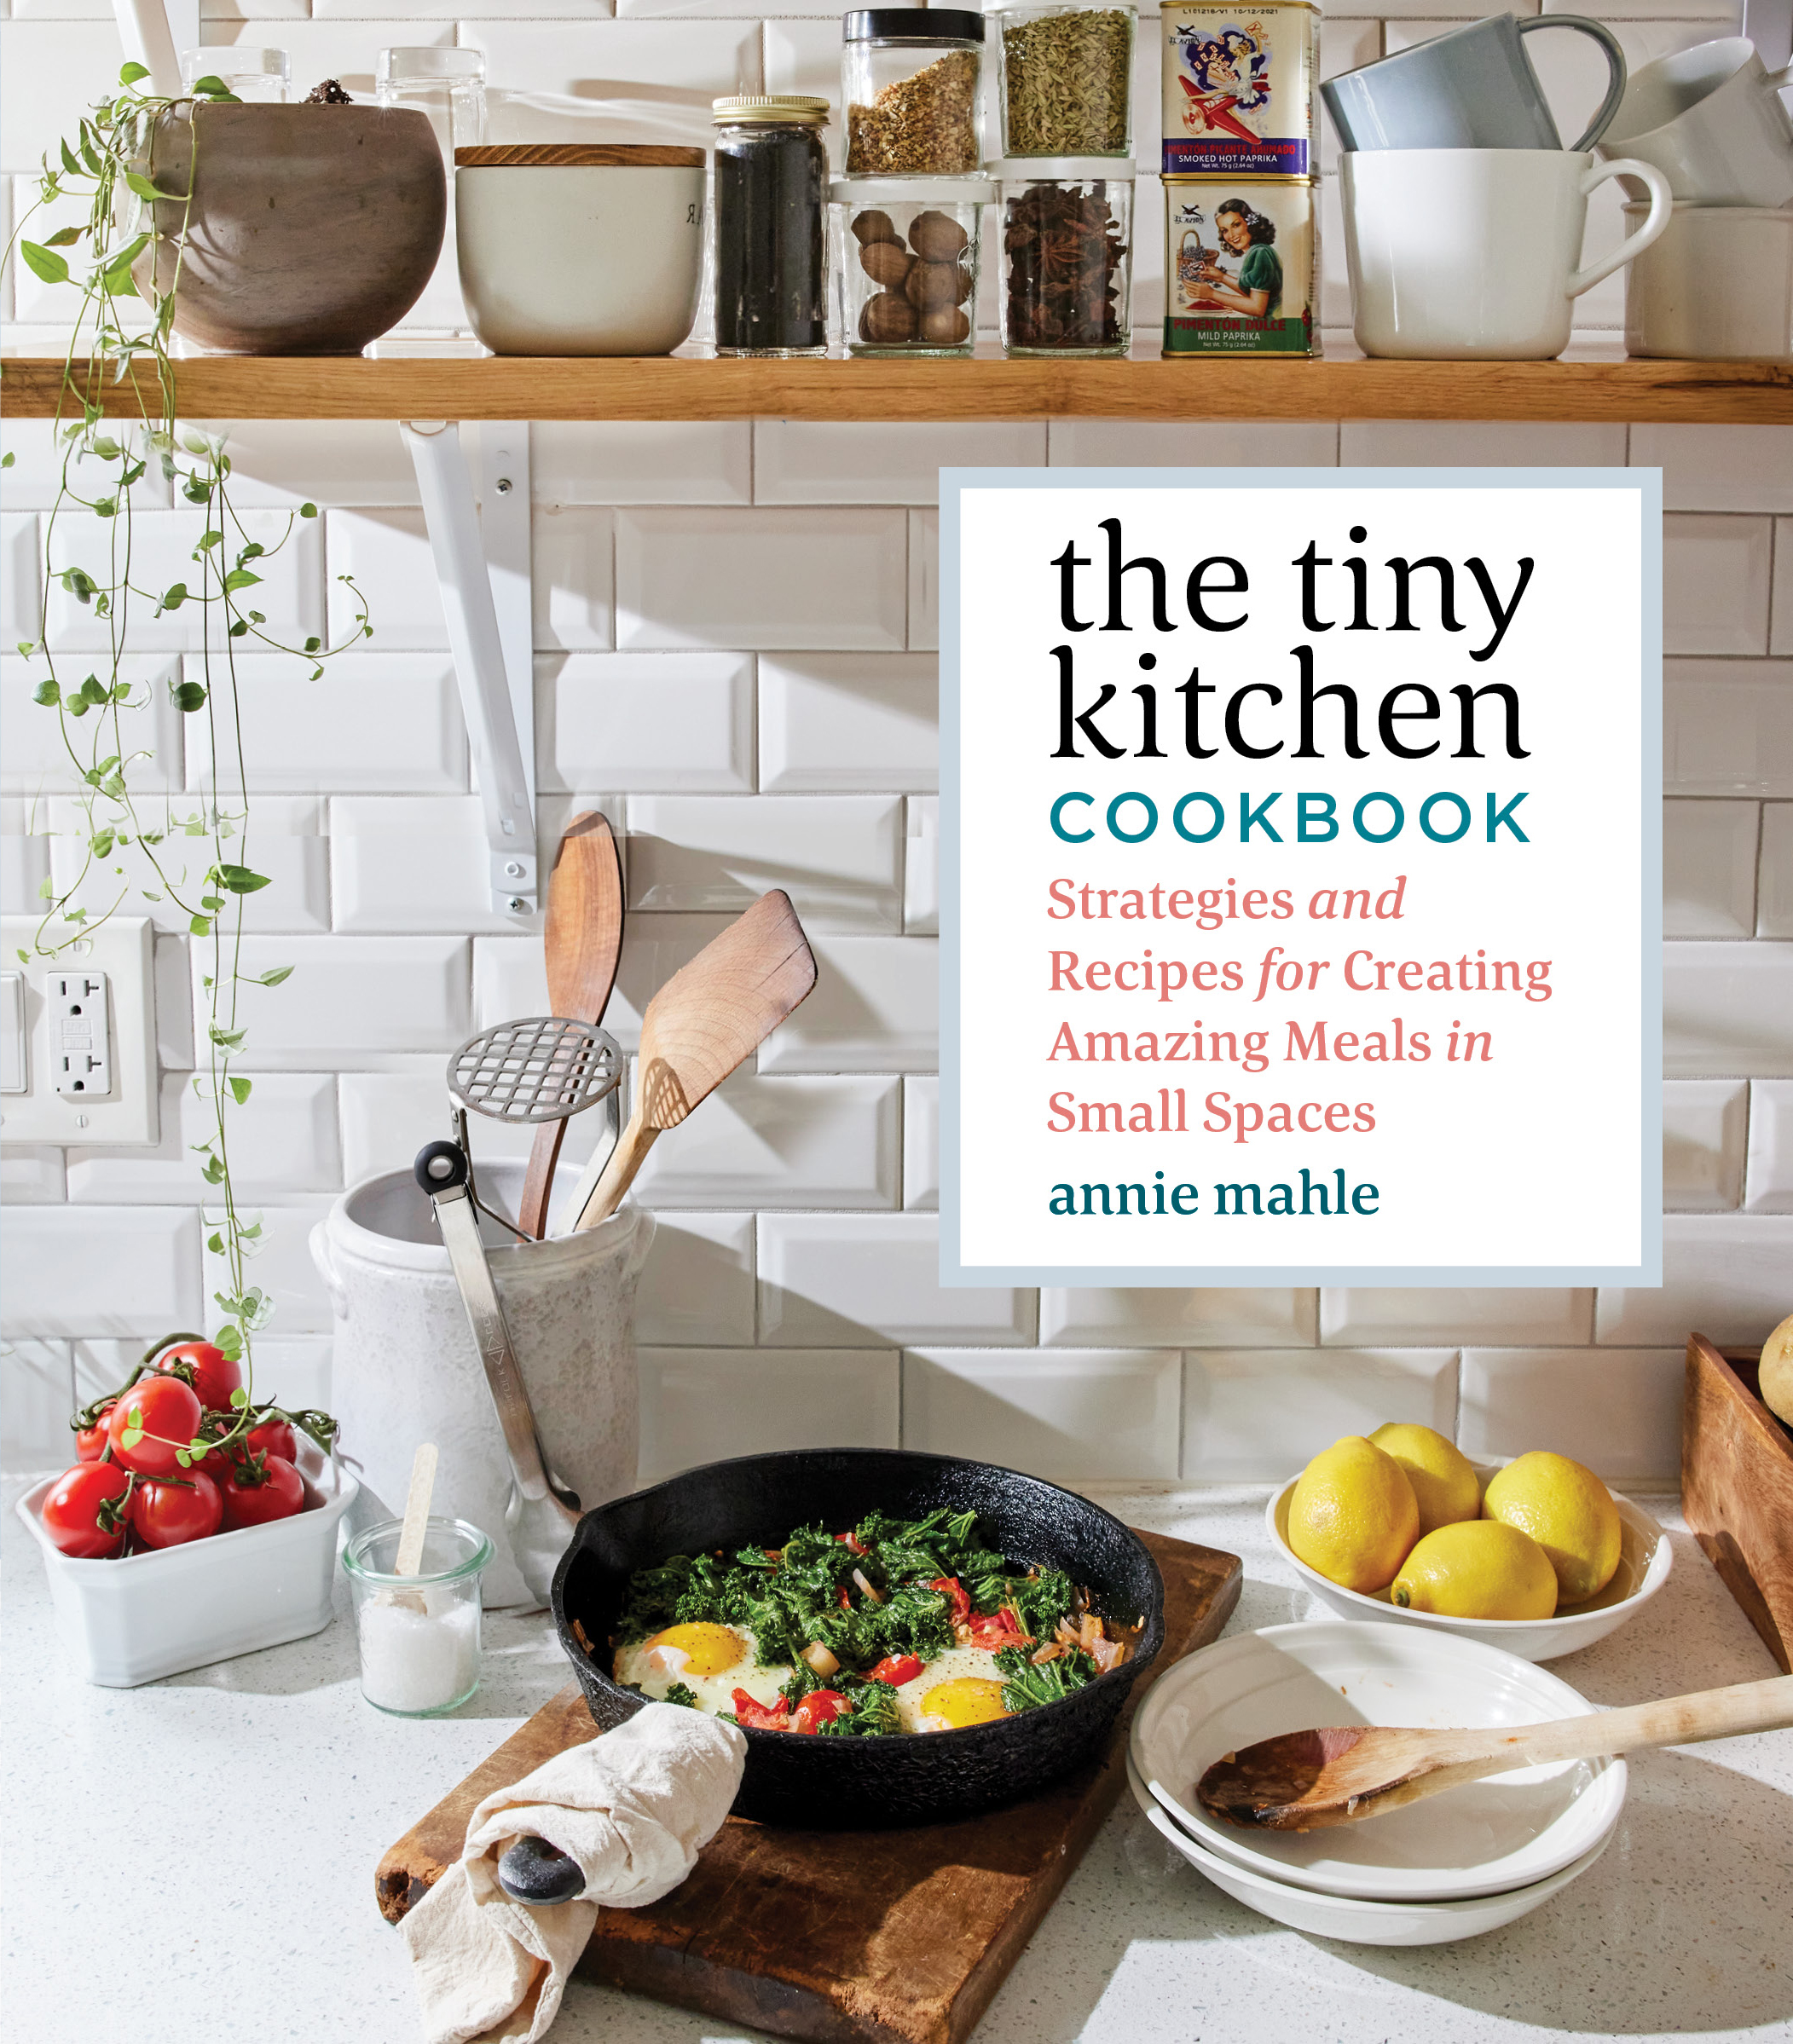 The Tiny Kitchen Cookbook Strategies and Recipes for Creating Amazing Meals in Small Spaces - Annie Mahle